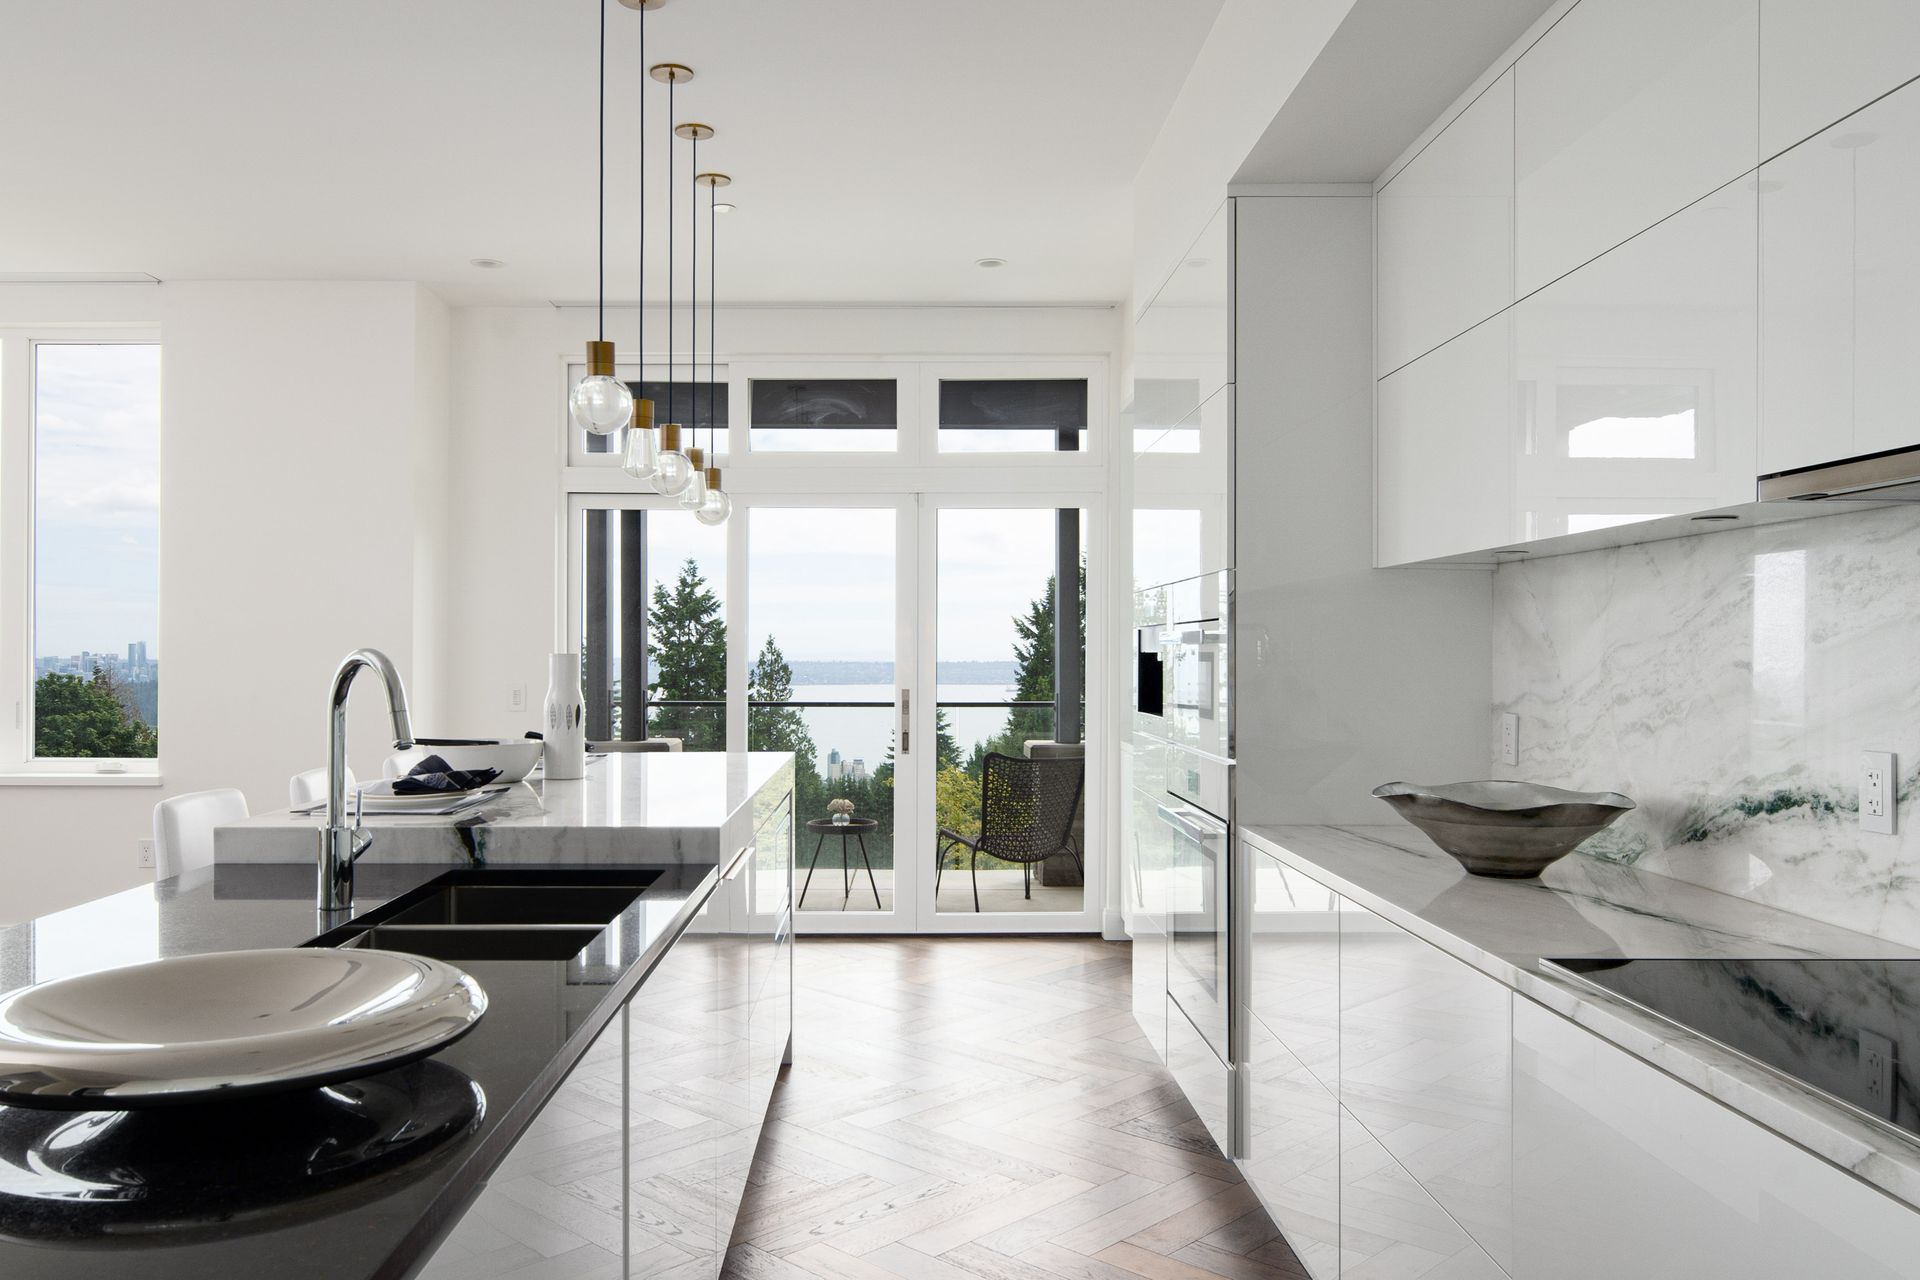 union-crt-2121-west-vancouver-tandy-gao-staging-12 at 2121 Union Court, Panorama Village, West Vancouver